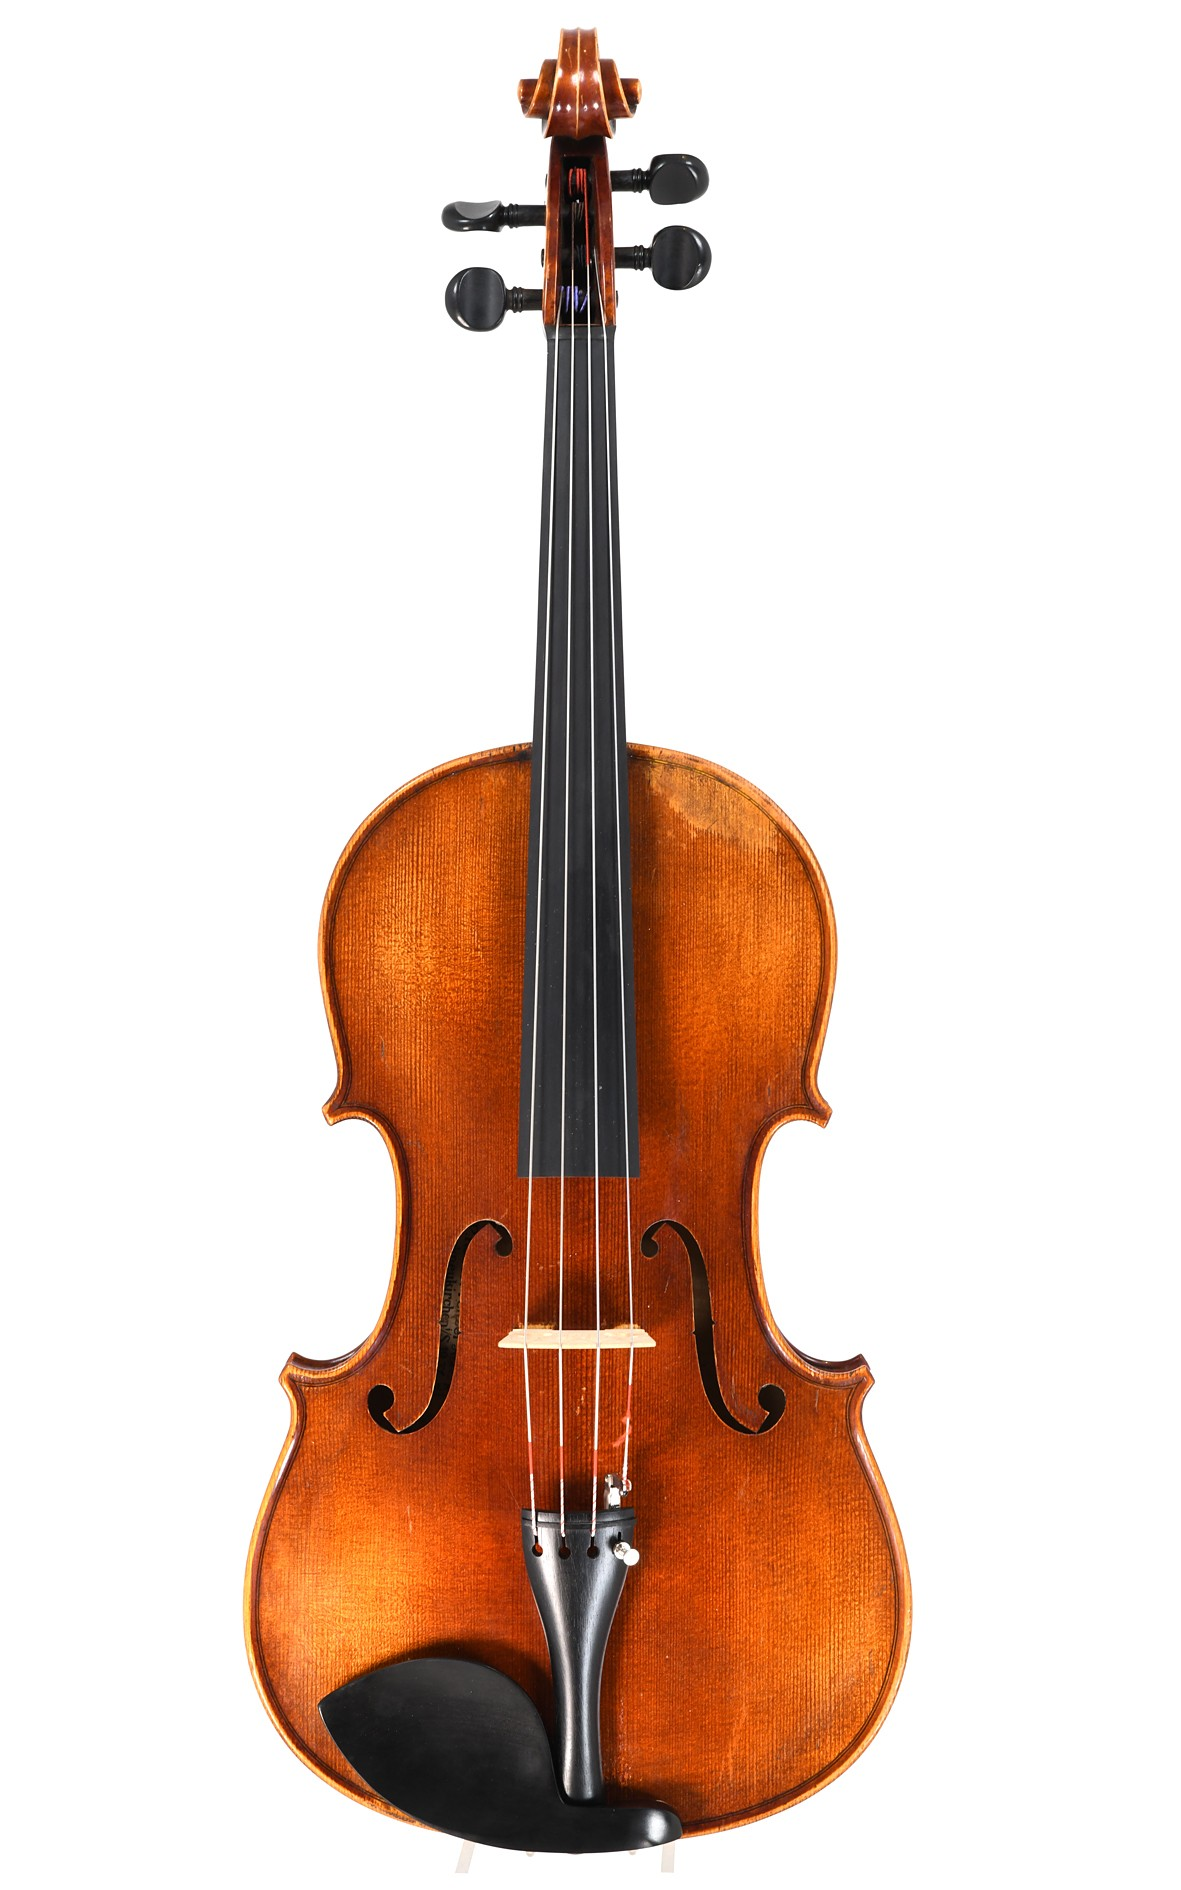 German viola for sale from Markneukirchen, approx. 1970